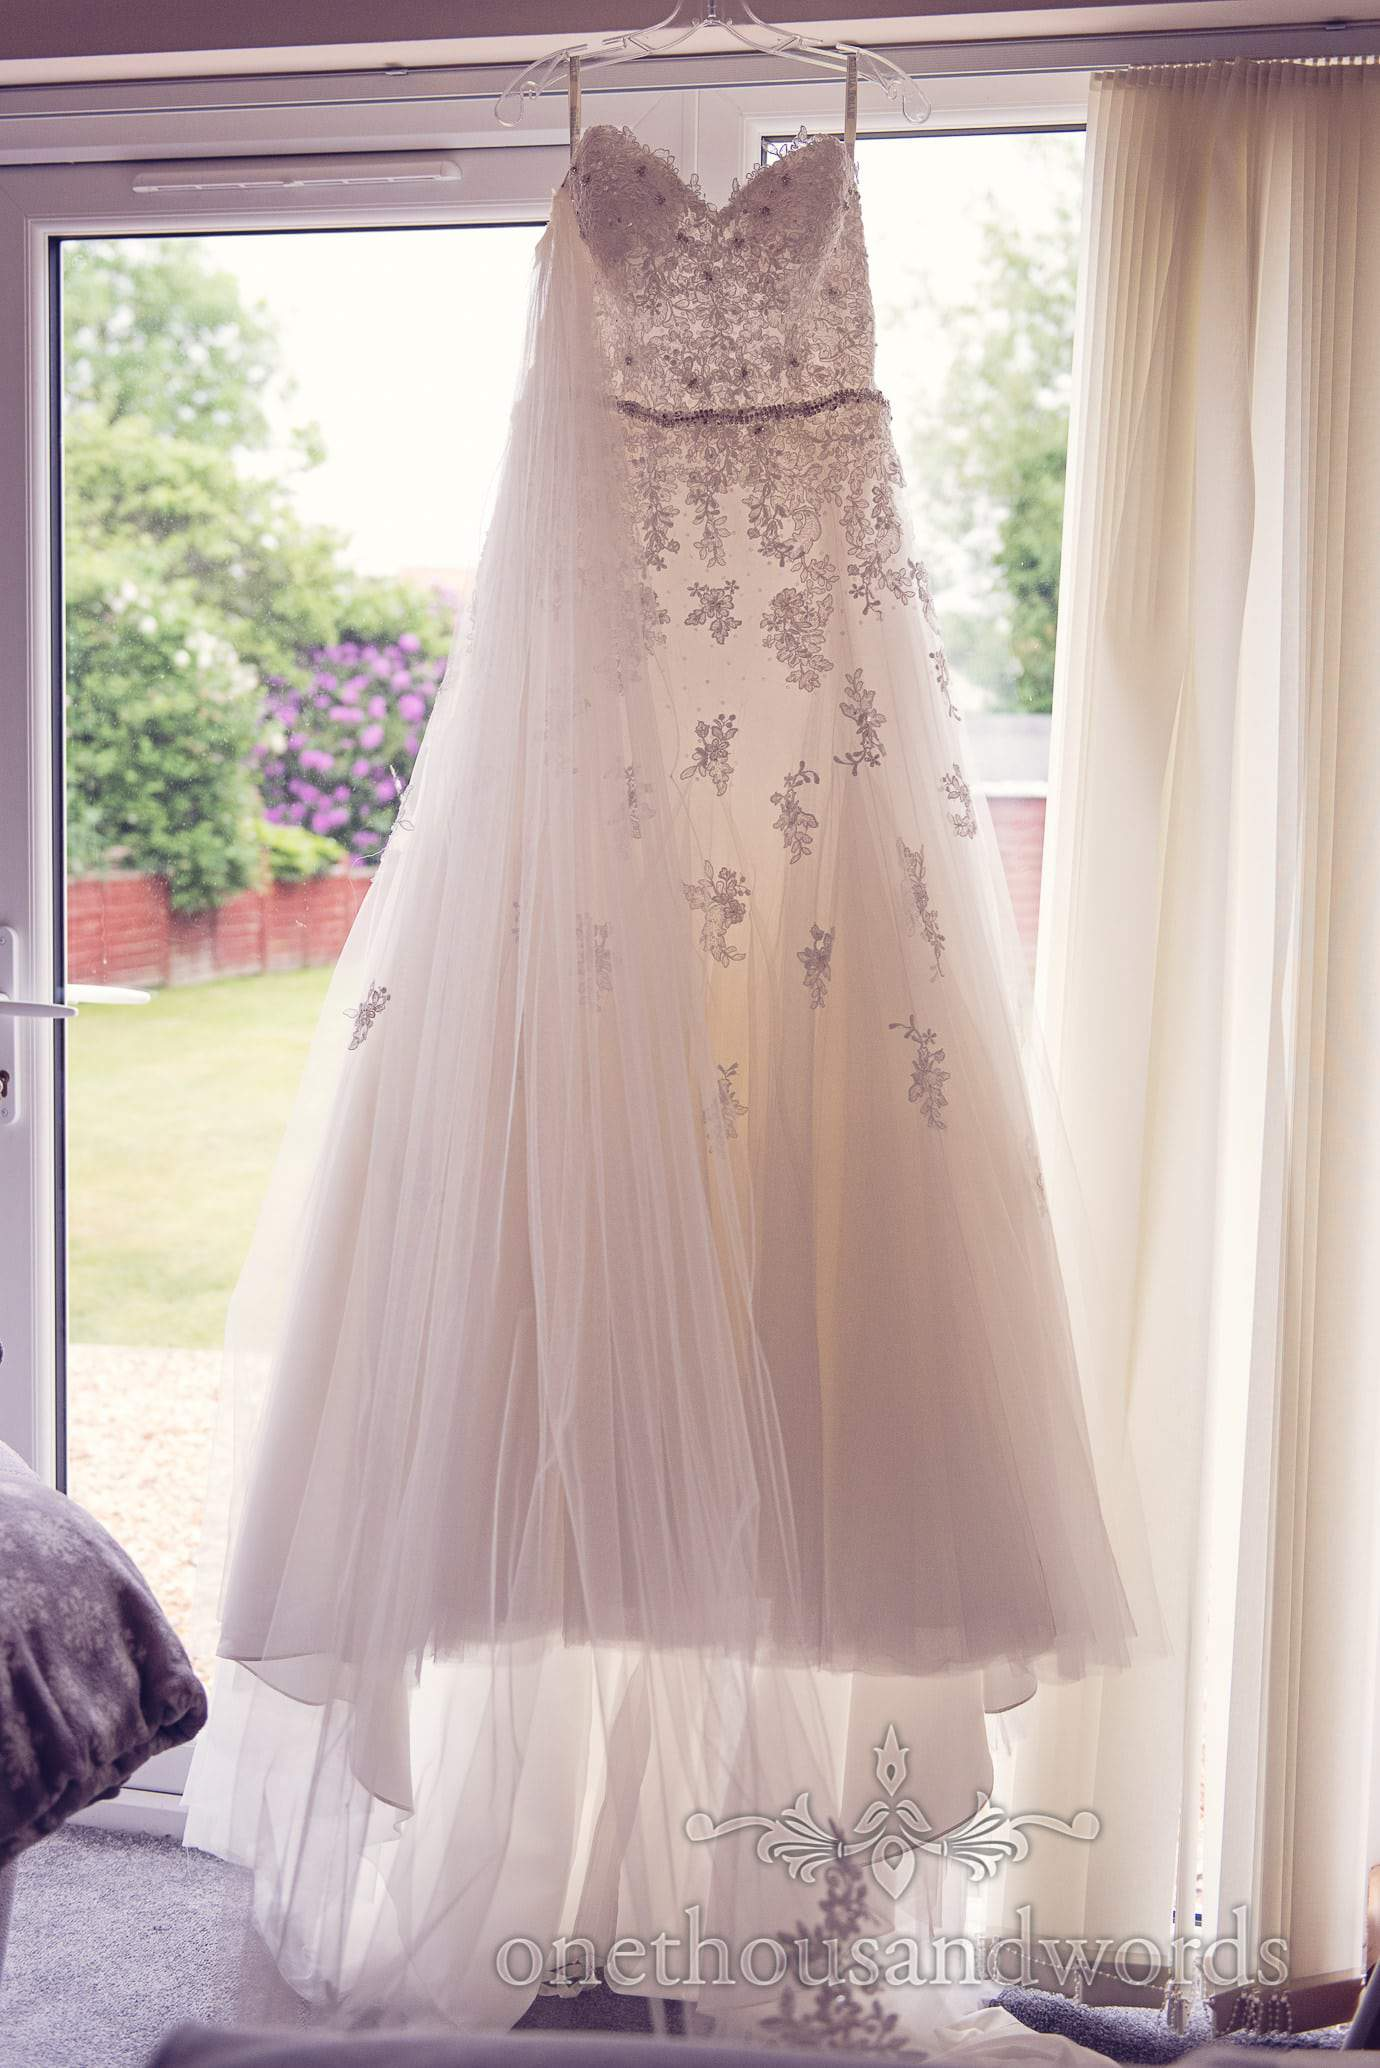 A line detailed white wedding dress hanging in window with wedding veil